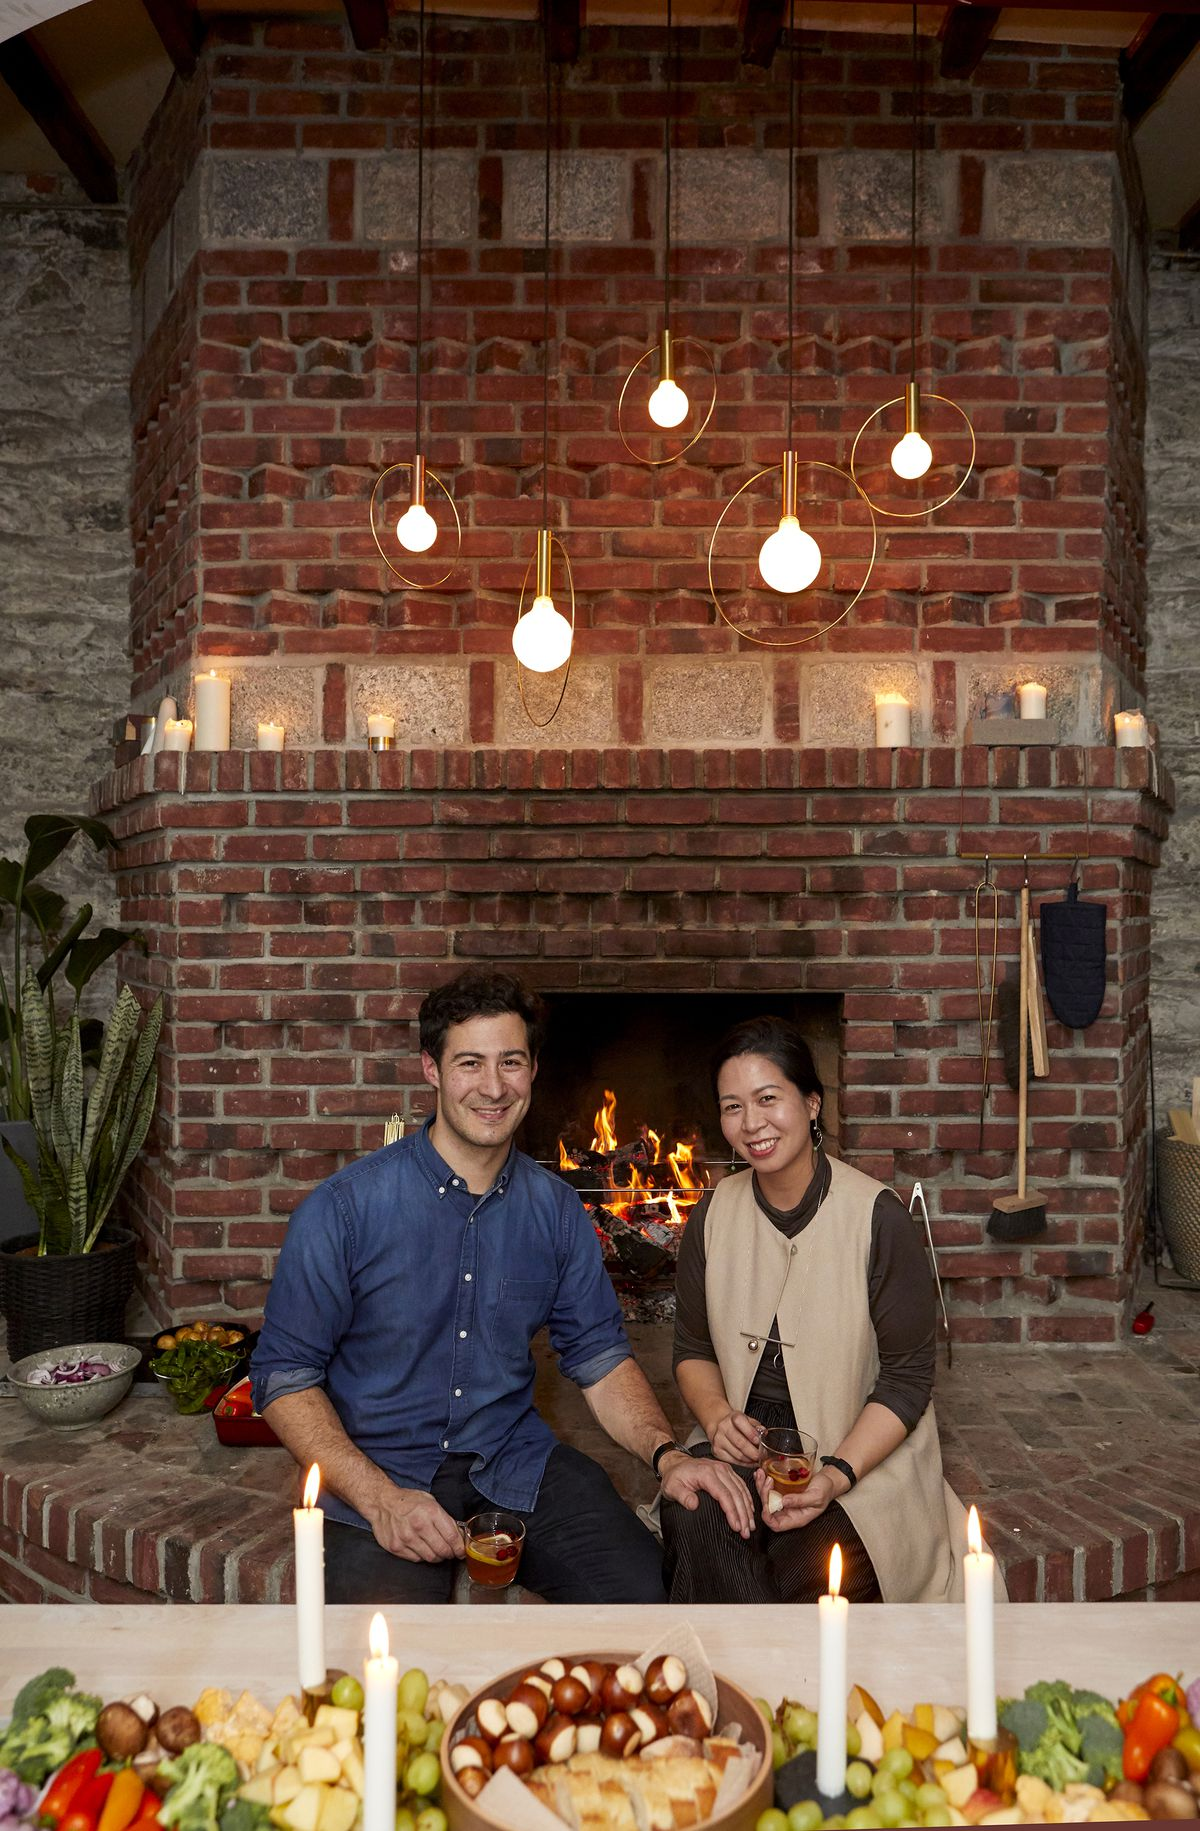 Lee and Davis sitting in front of their lit fireplace.